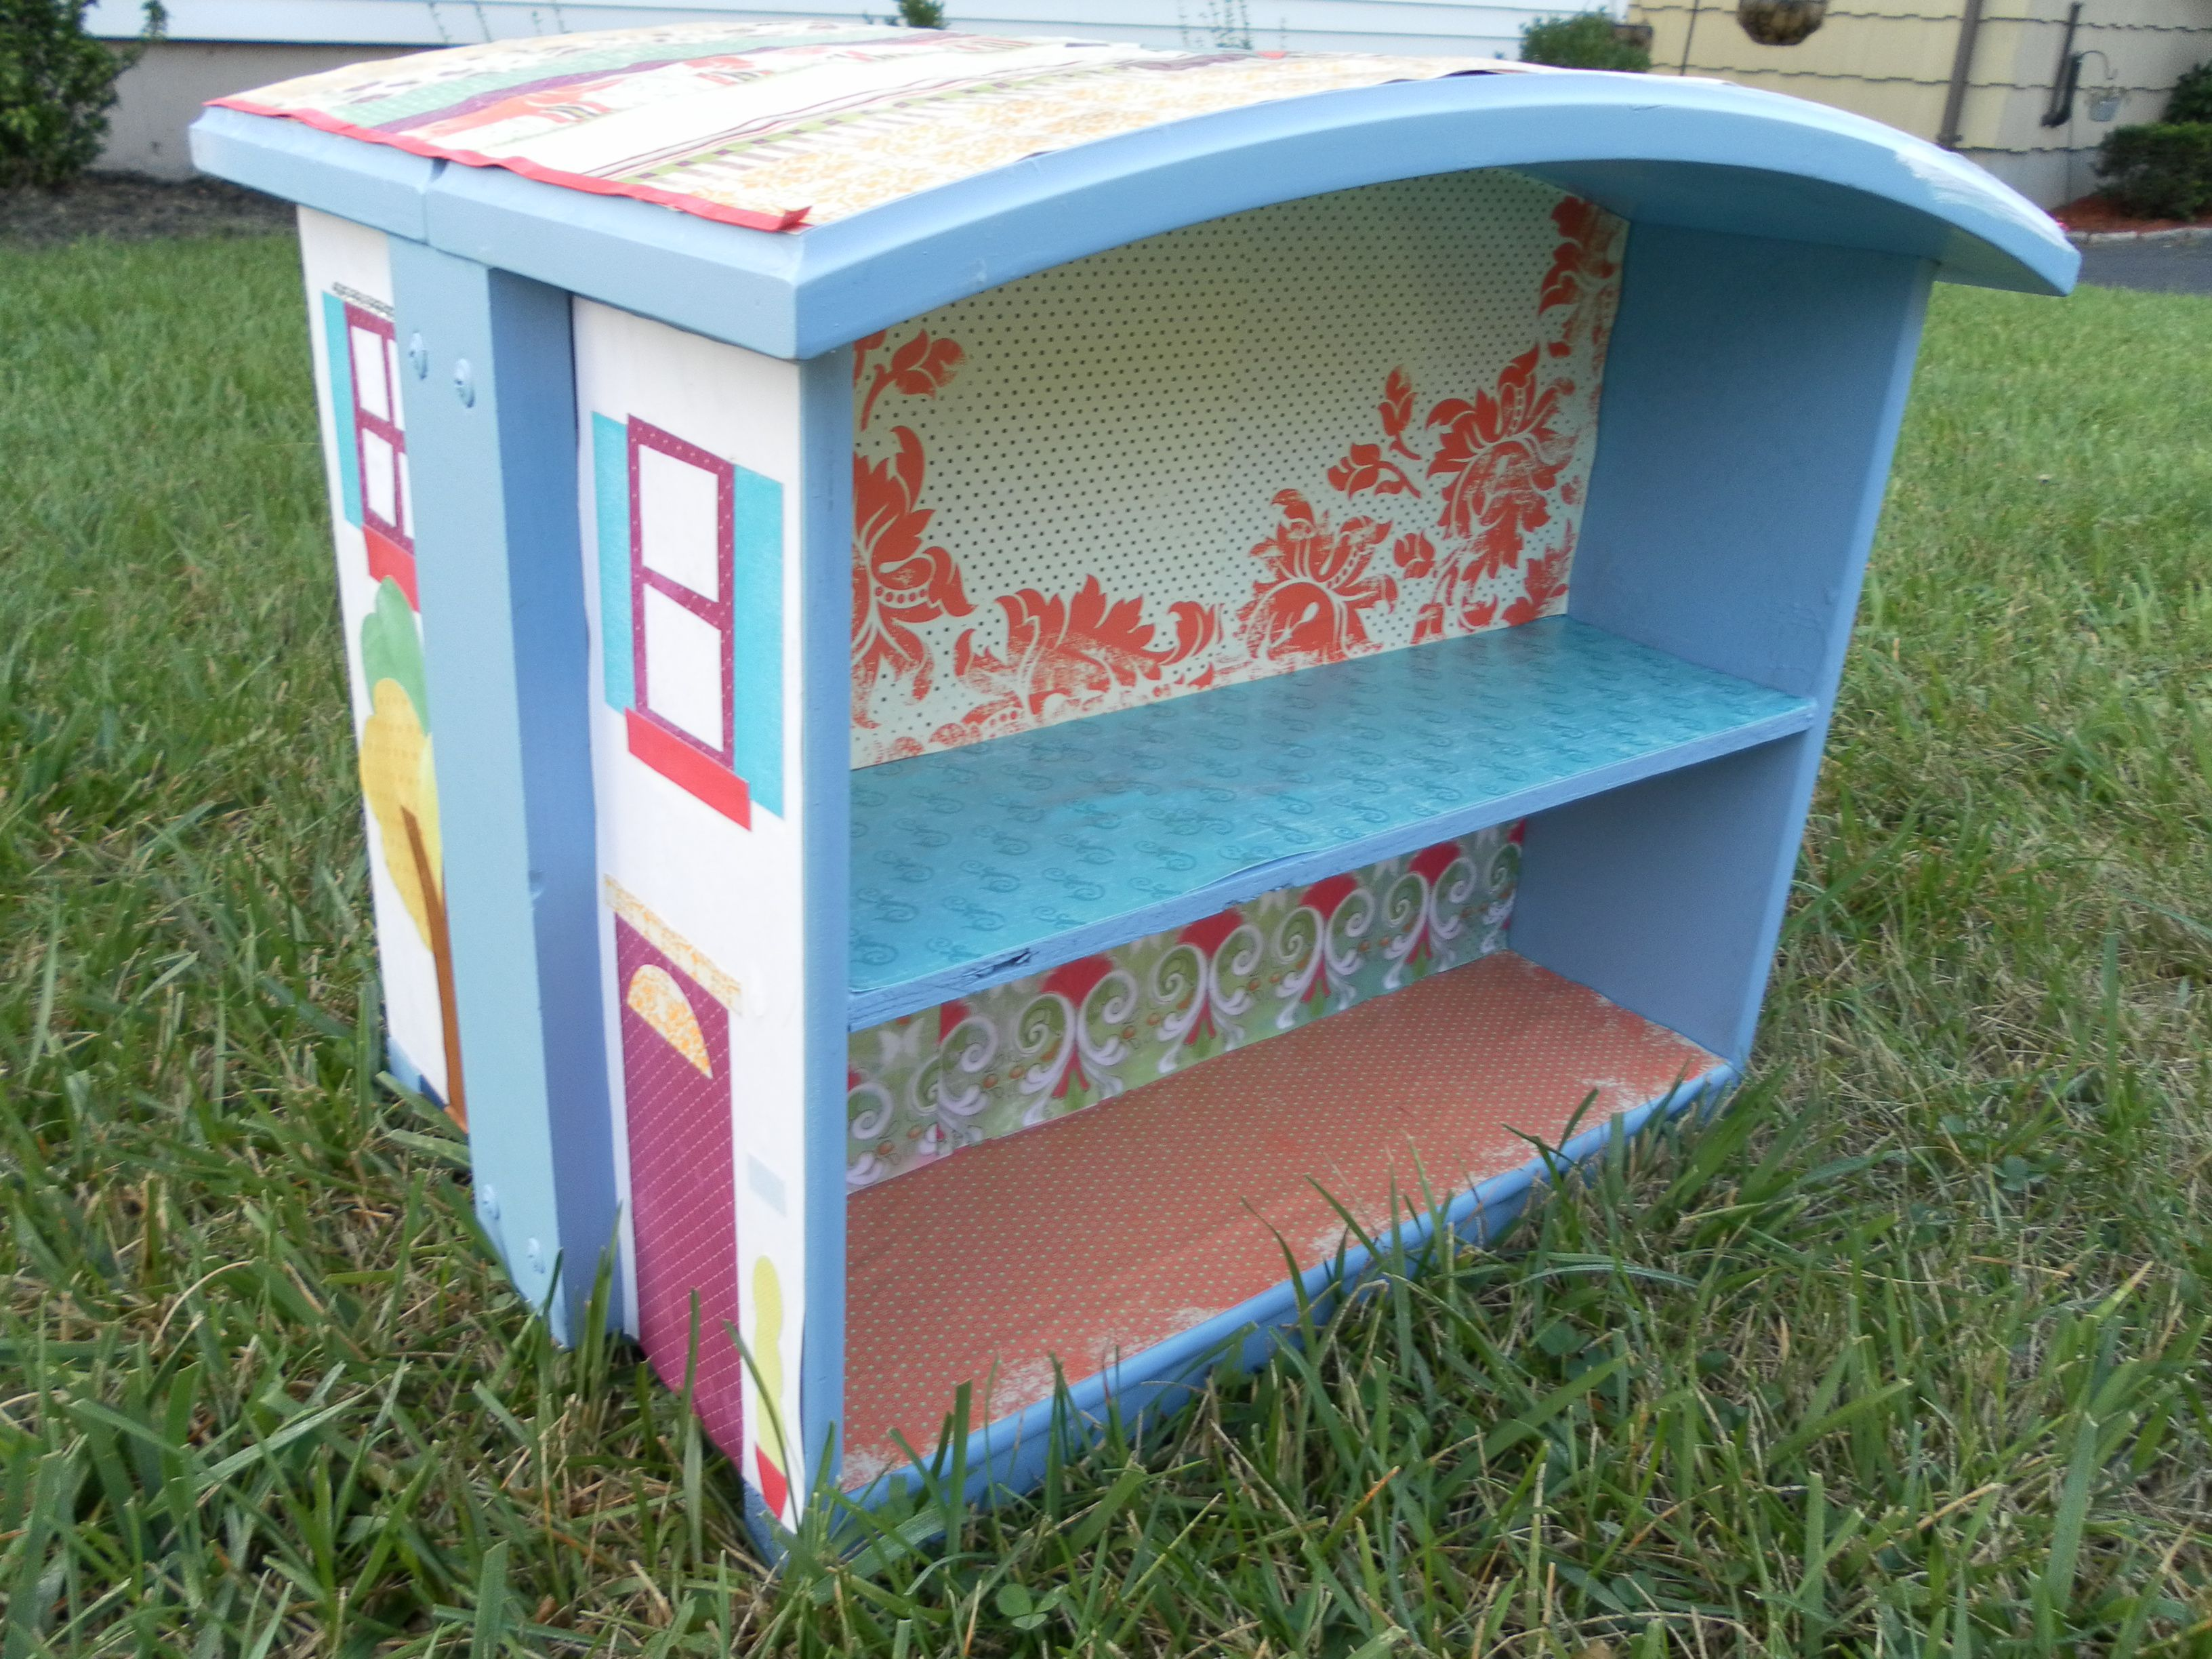 How to make dresser drawers - Diy How To Make A Dollhouse Using Drawers Cute Idea Step By Step Tutorial